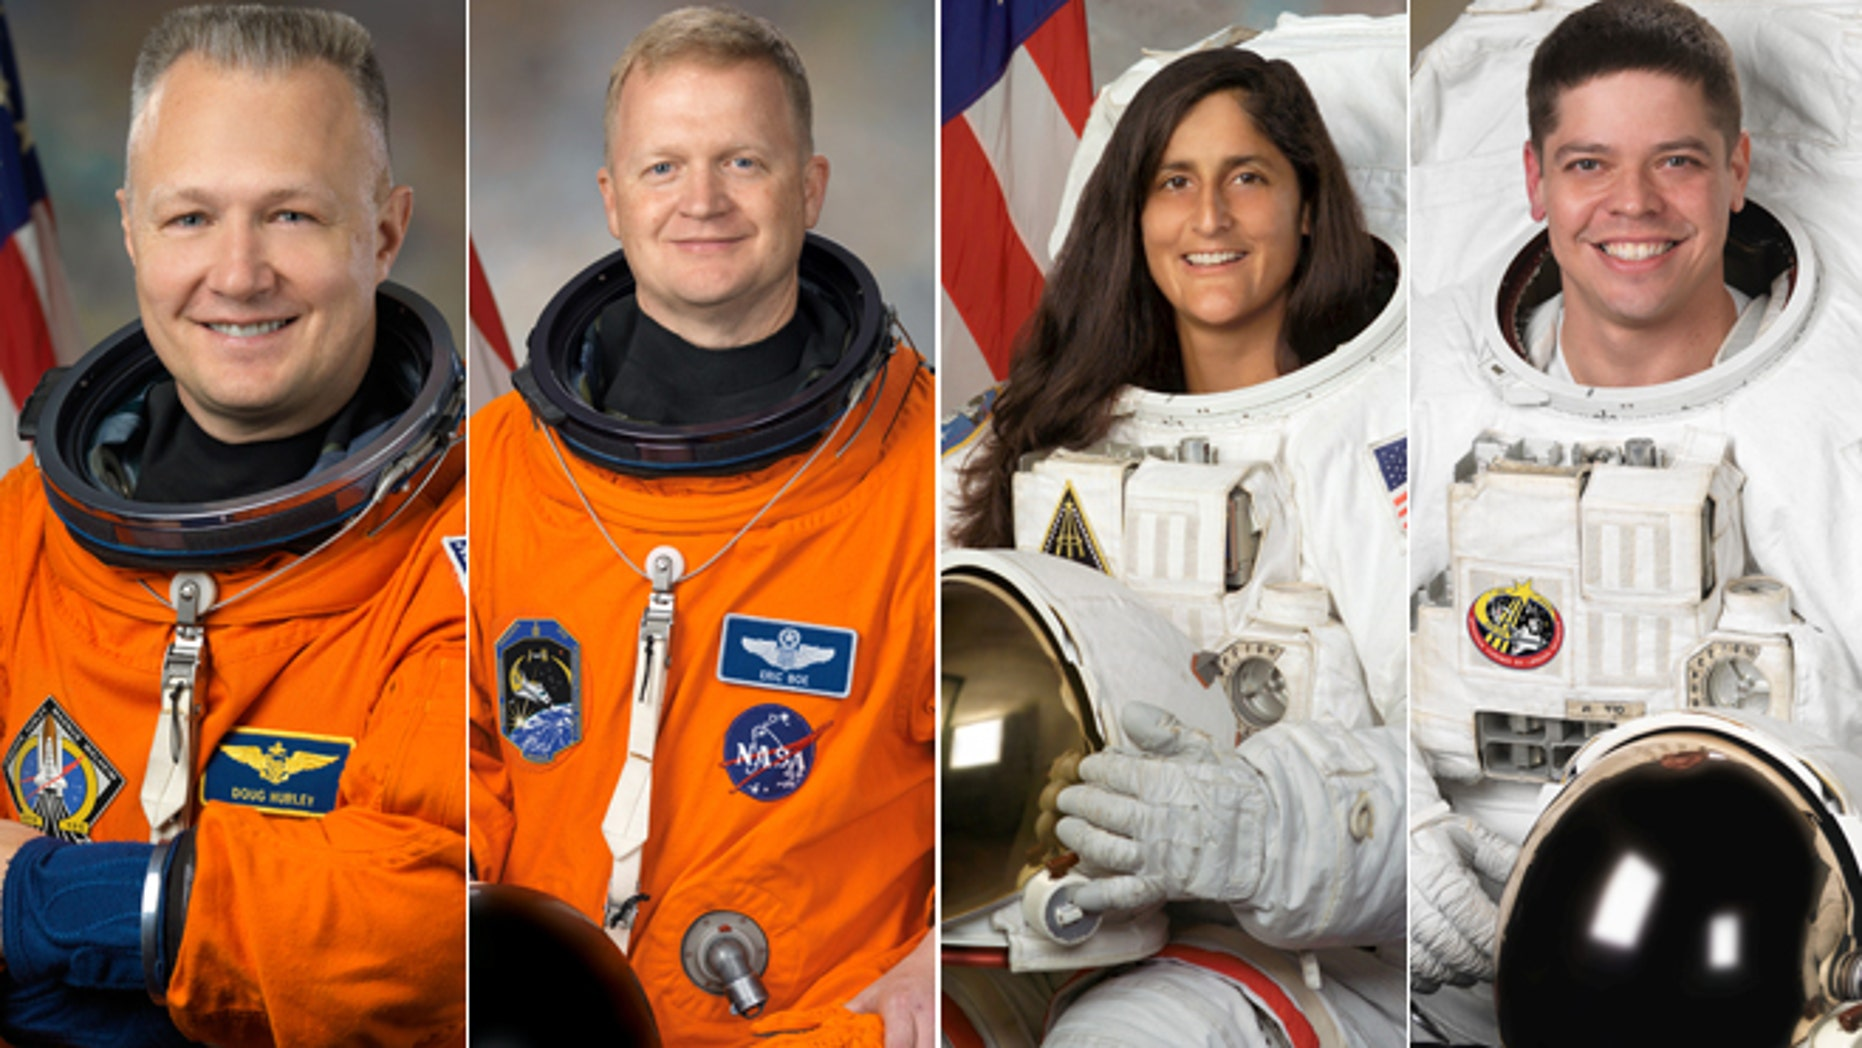 NASA selects 4 astronauts to lead commercial space missions. Pictured from left to right: Douglas Hurley, Eric Boe, Sunita Williams and Robert Behnken.